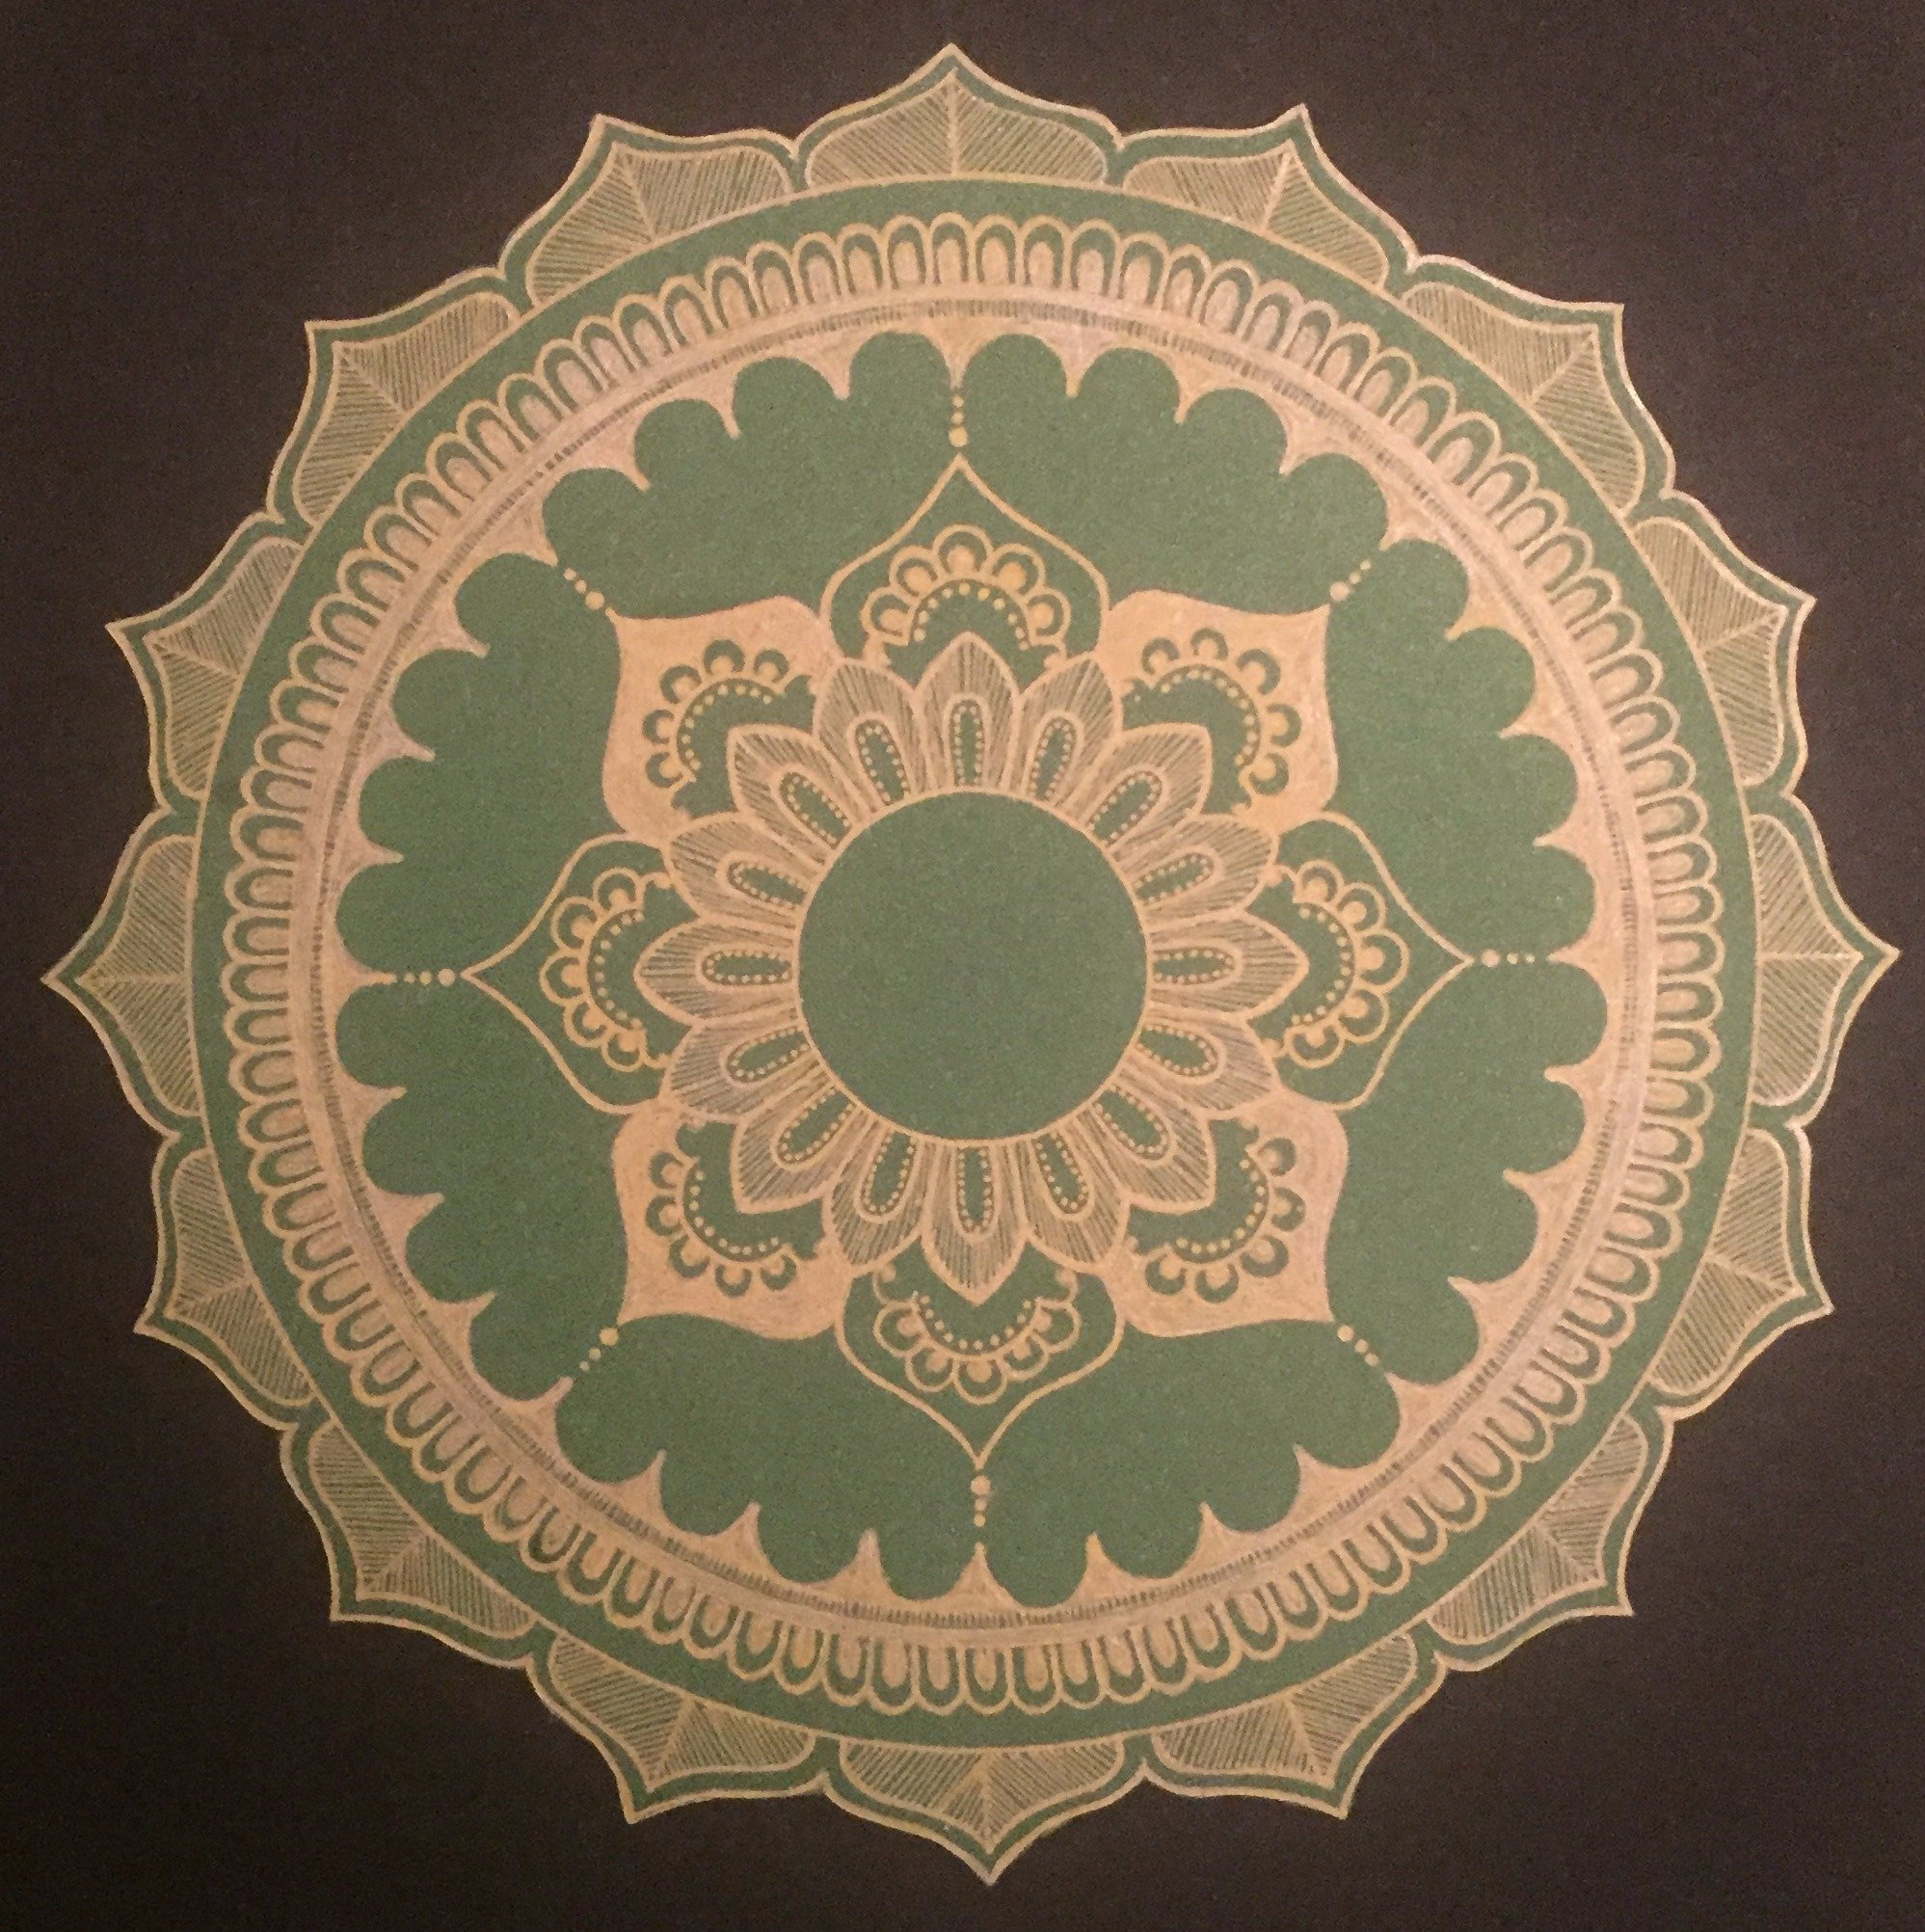 Rabina Byanjankar Shakya: 'Golden Lotus', 2017 Other Painting, Floral. Artist Description: Golden lotus cut out Mandala. Hand drawn using gold color gel pen on green metallic sheet cutout and pasted on black A4 size paper. Color green is associated with health, prosperity, and harmony. Gold represents wealth, success and status. ...